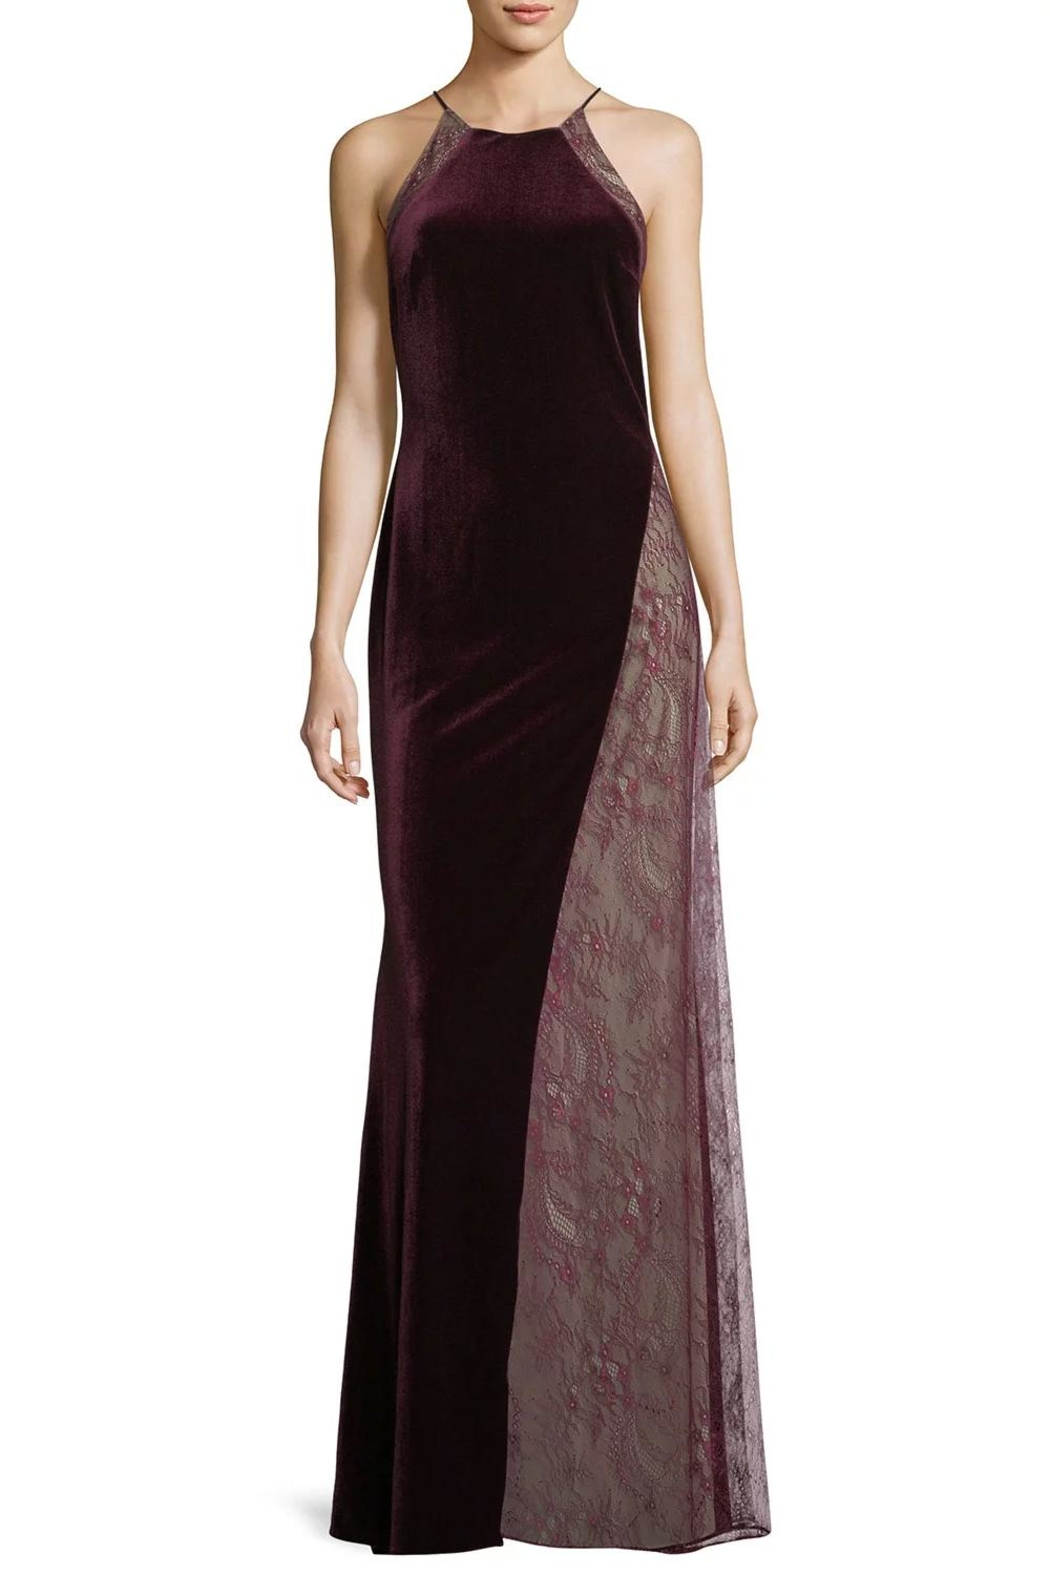 Badgley Mischka Velvet Lace Gown from New Jersey by District 5 ...